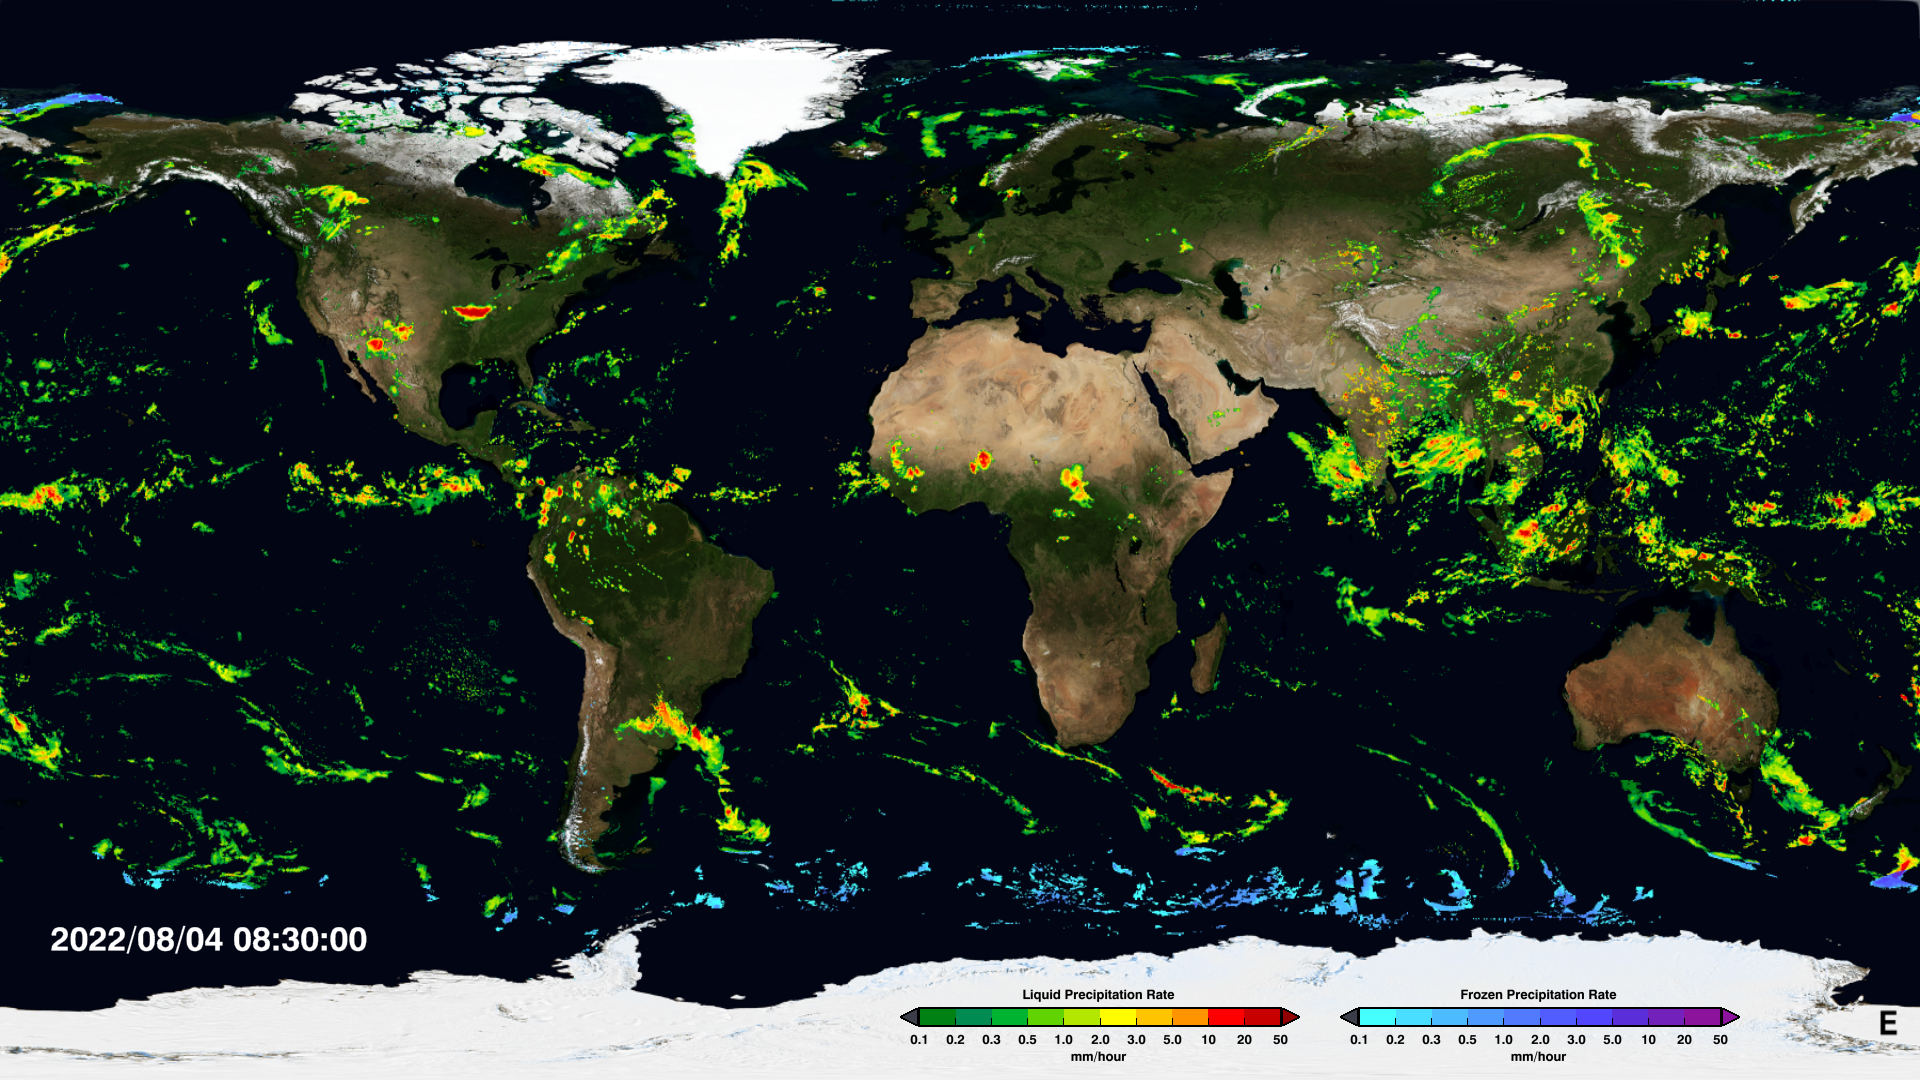 IMERG Early Run image of the Earth displaying the last half hour of global precipitation rates